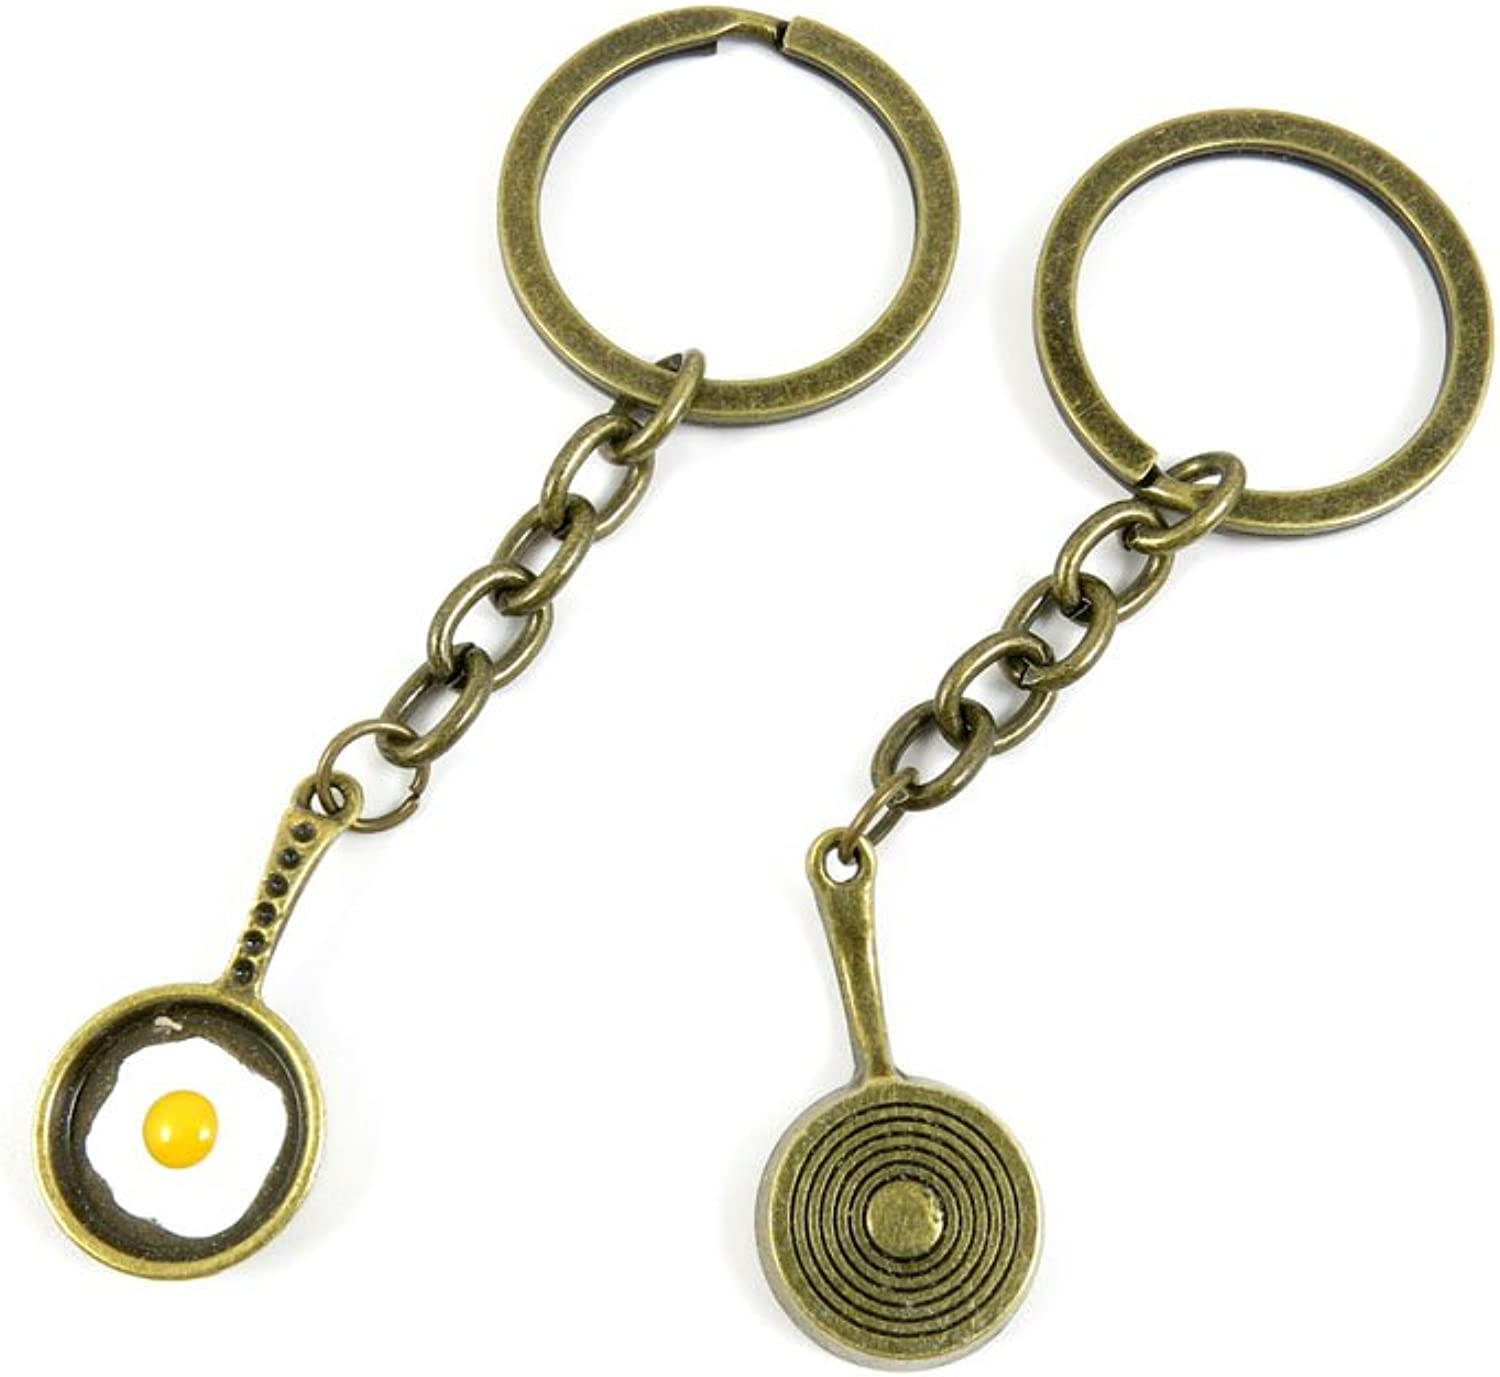 100 PCS Keyrings Keychains Key Ring Chains Tags Jewelry Findings Clasps Buckles Supplies P5BN1 Omelette Pan